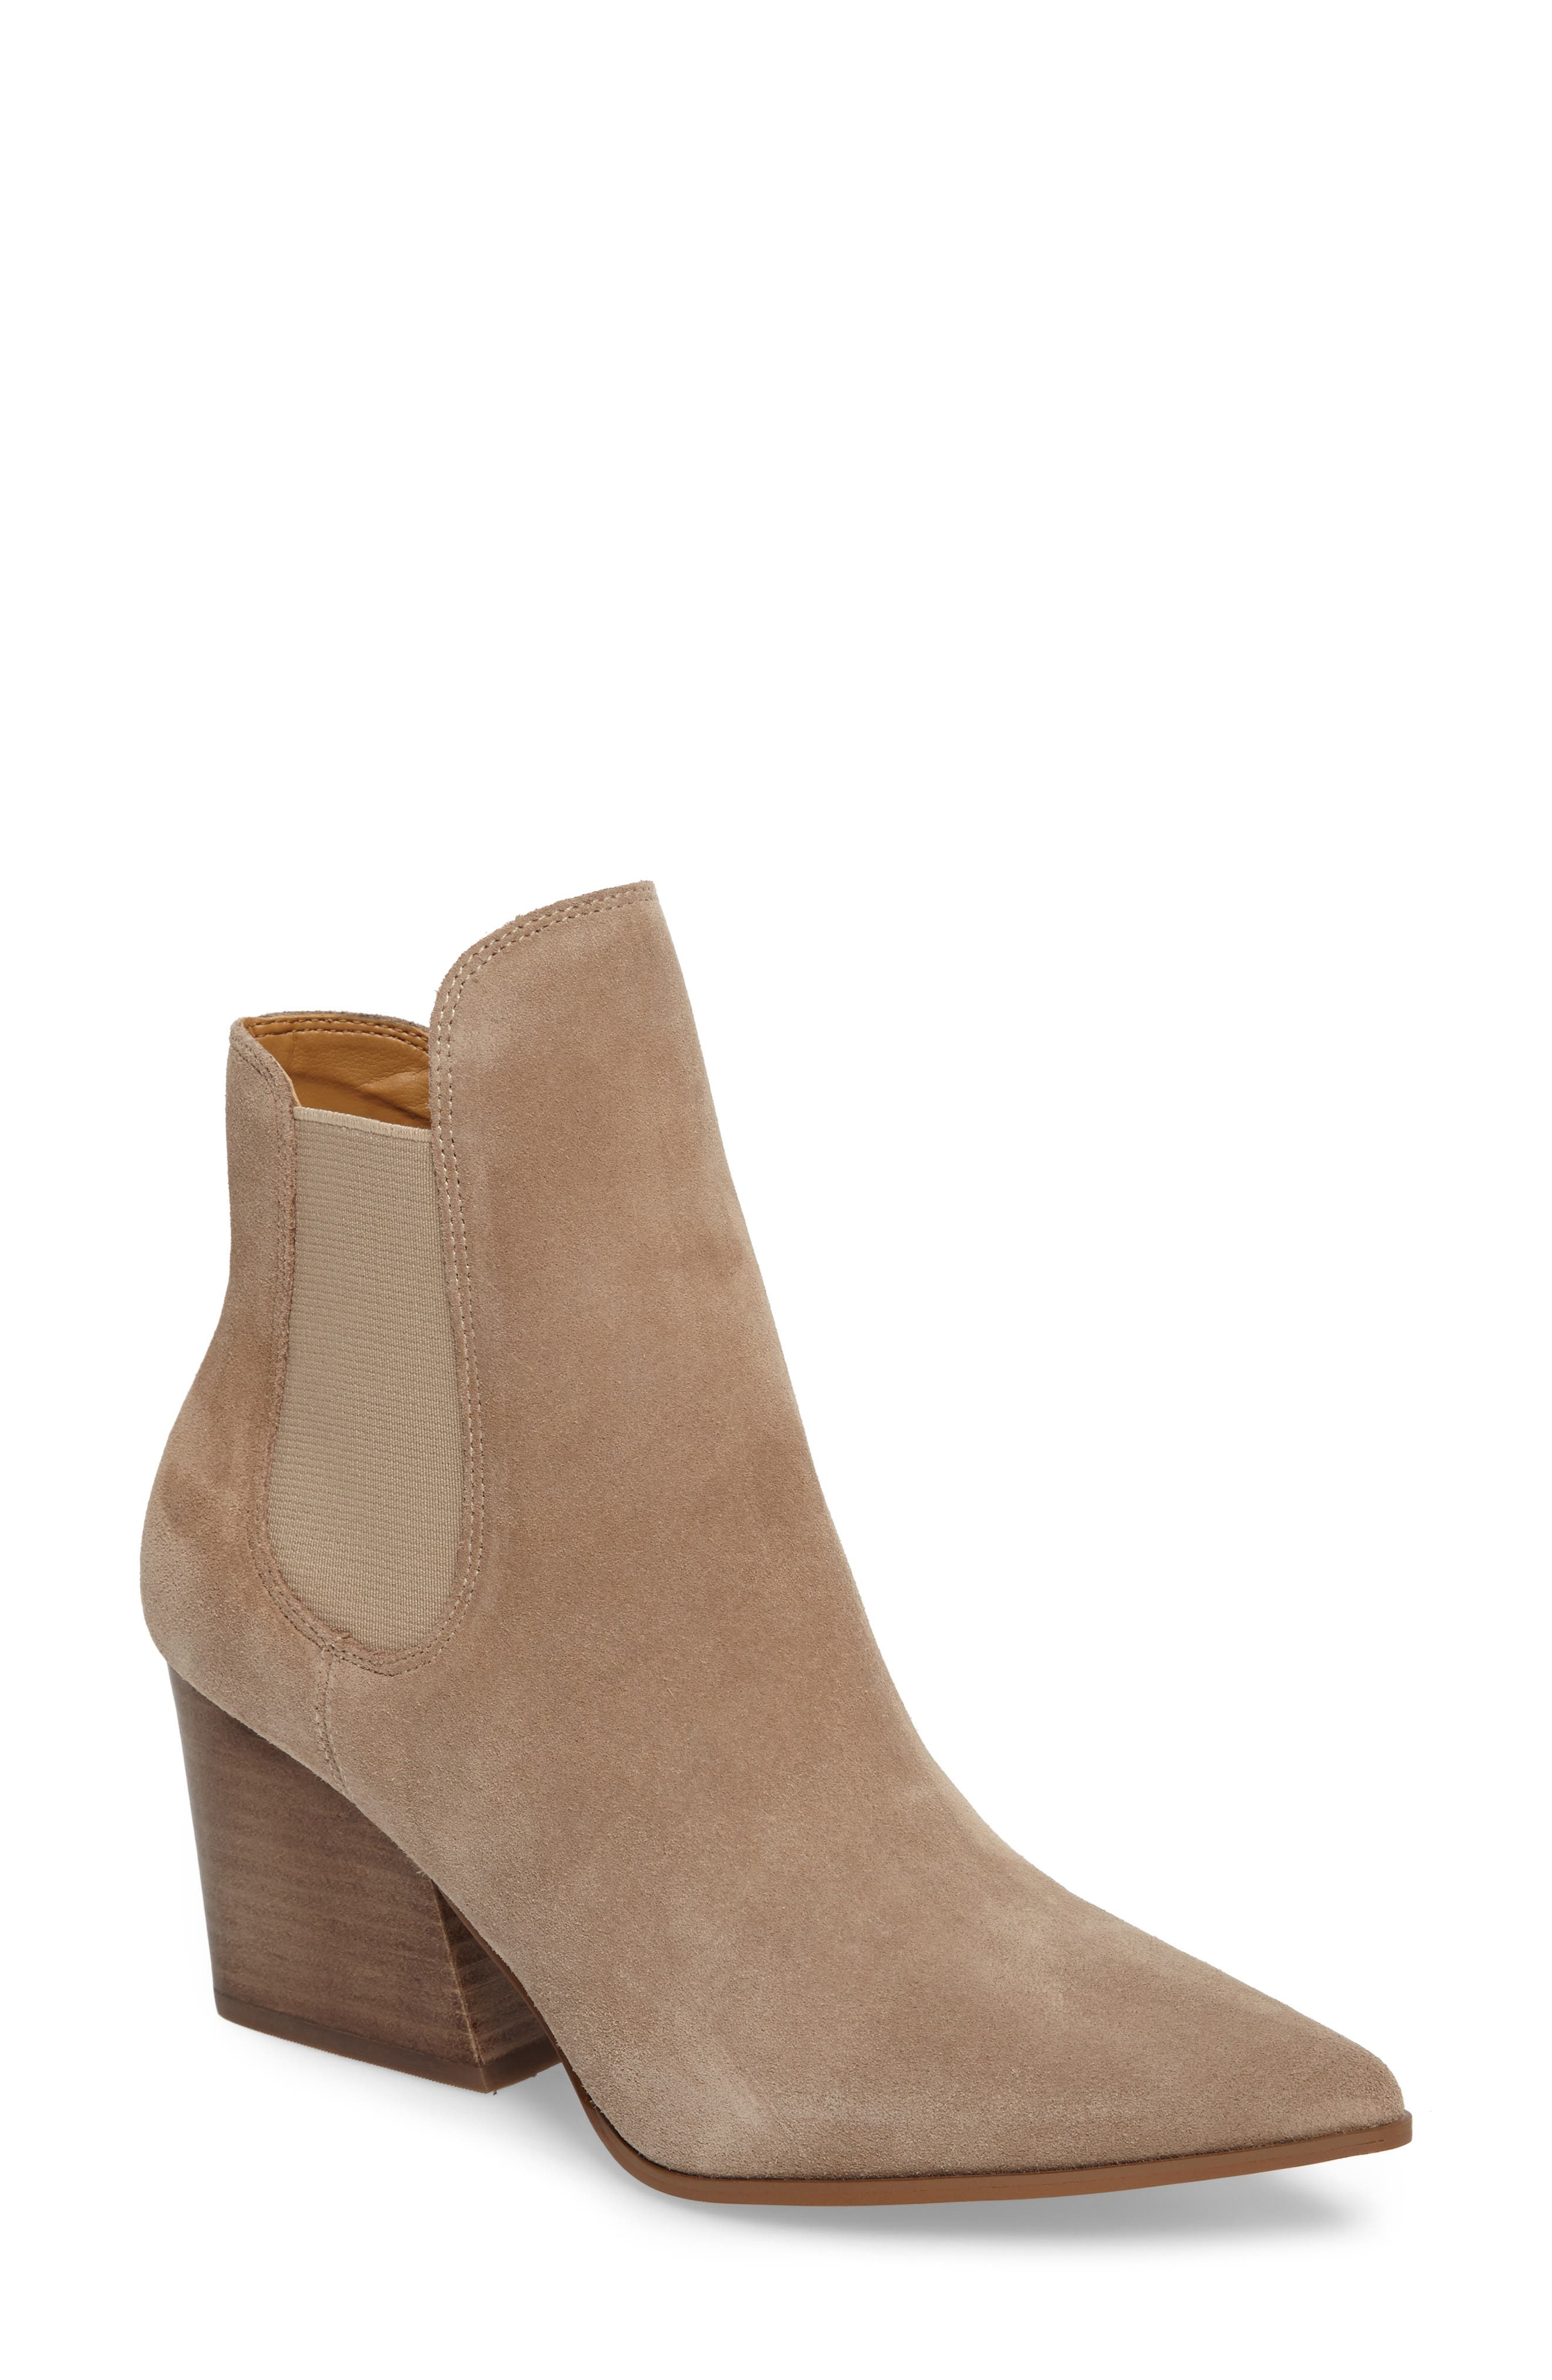 Main Image - KENDALL + KYLIE 'Finley' Chelsea Boot (Women)